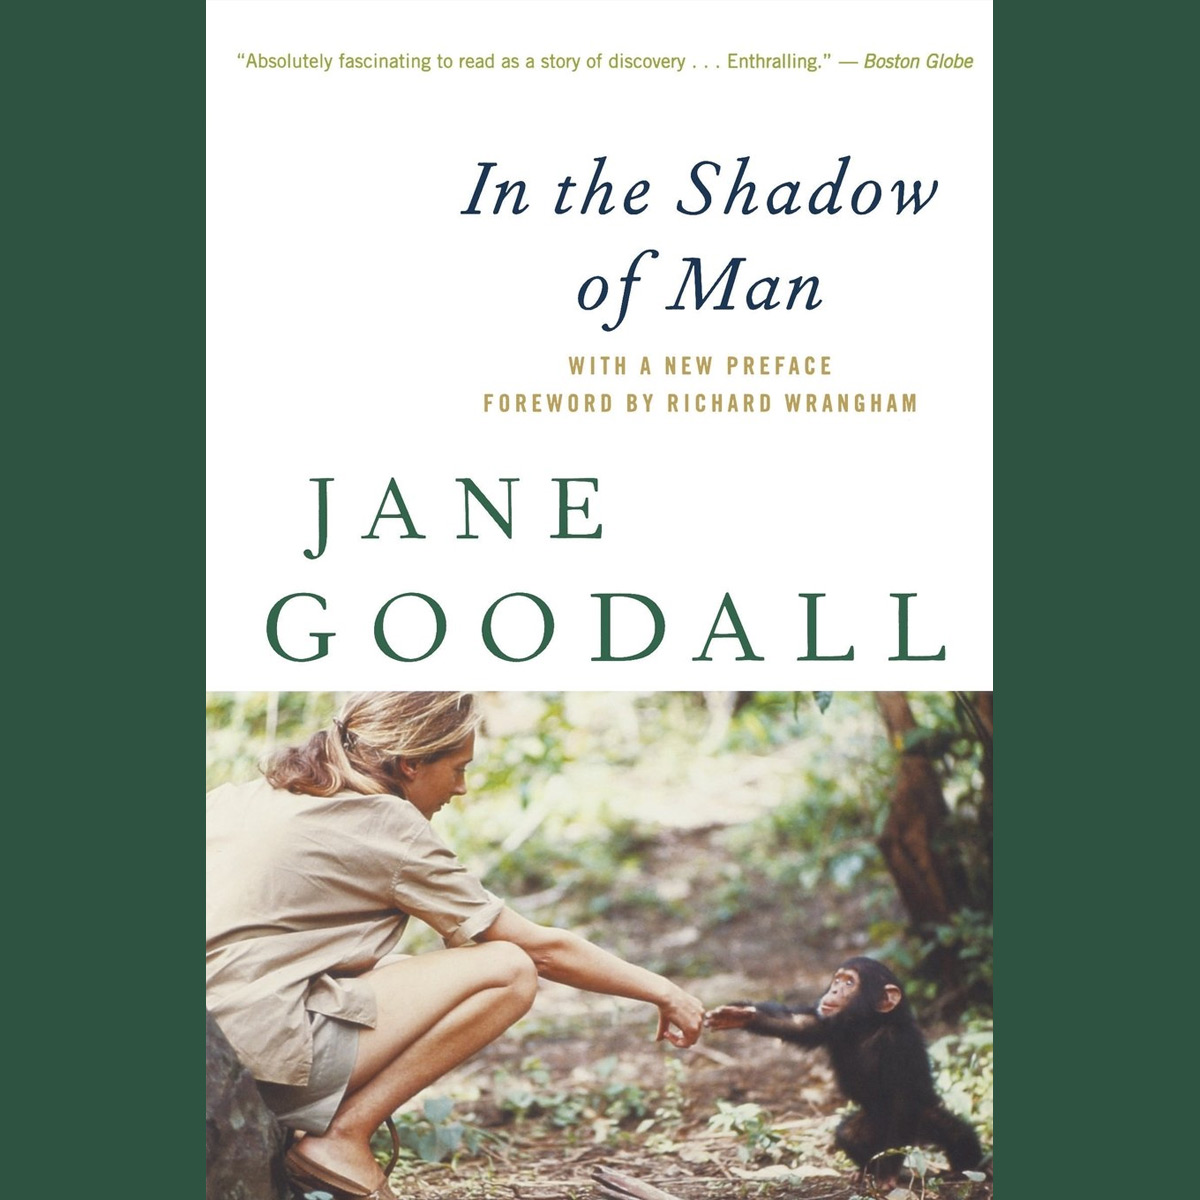 Jane_Goodall_In_the_Shadow_of_man_Book_Cover